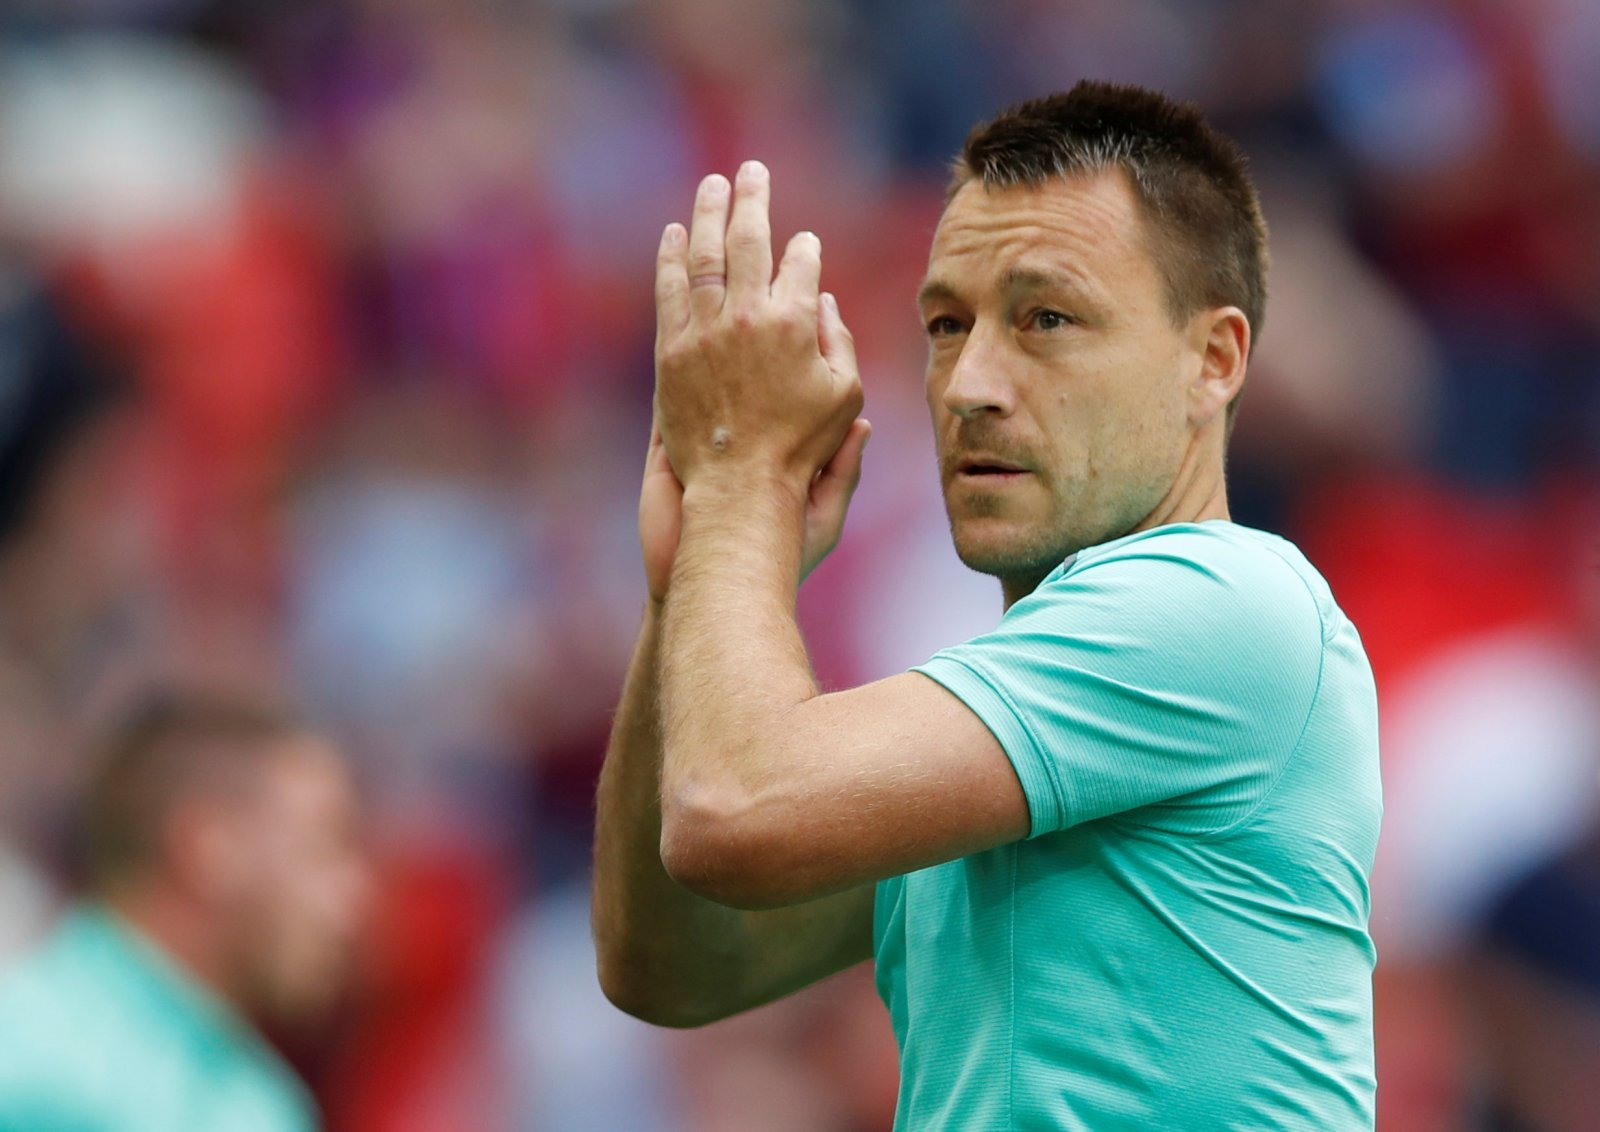 Opinion: Terry's return to Aston Villa is not a return without its risks